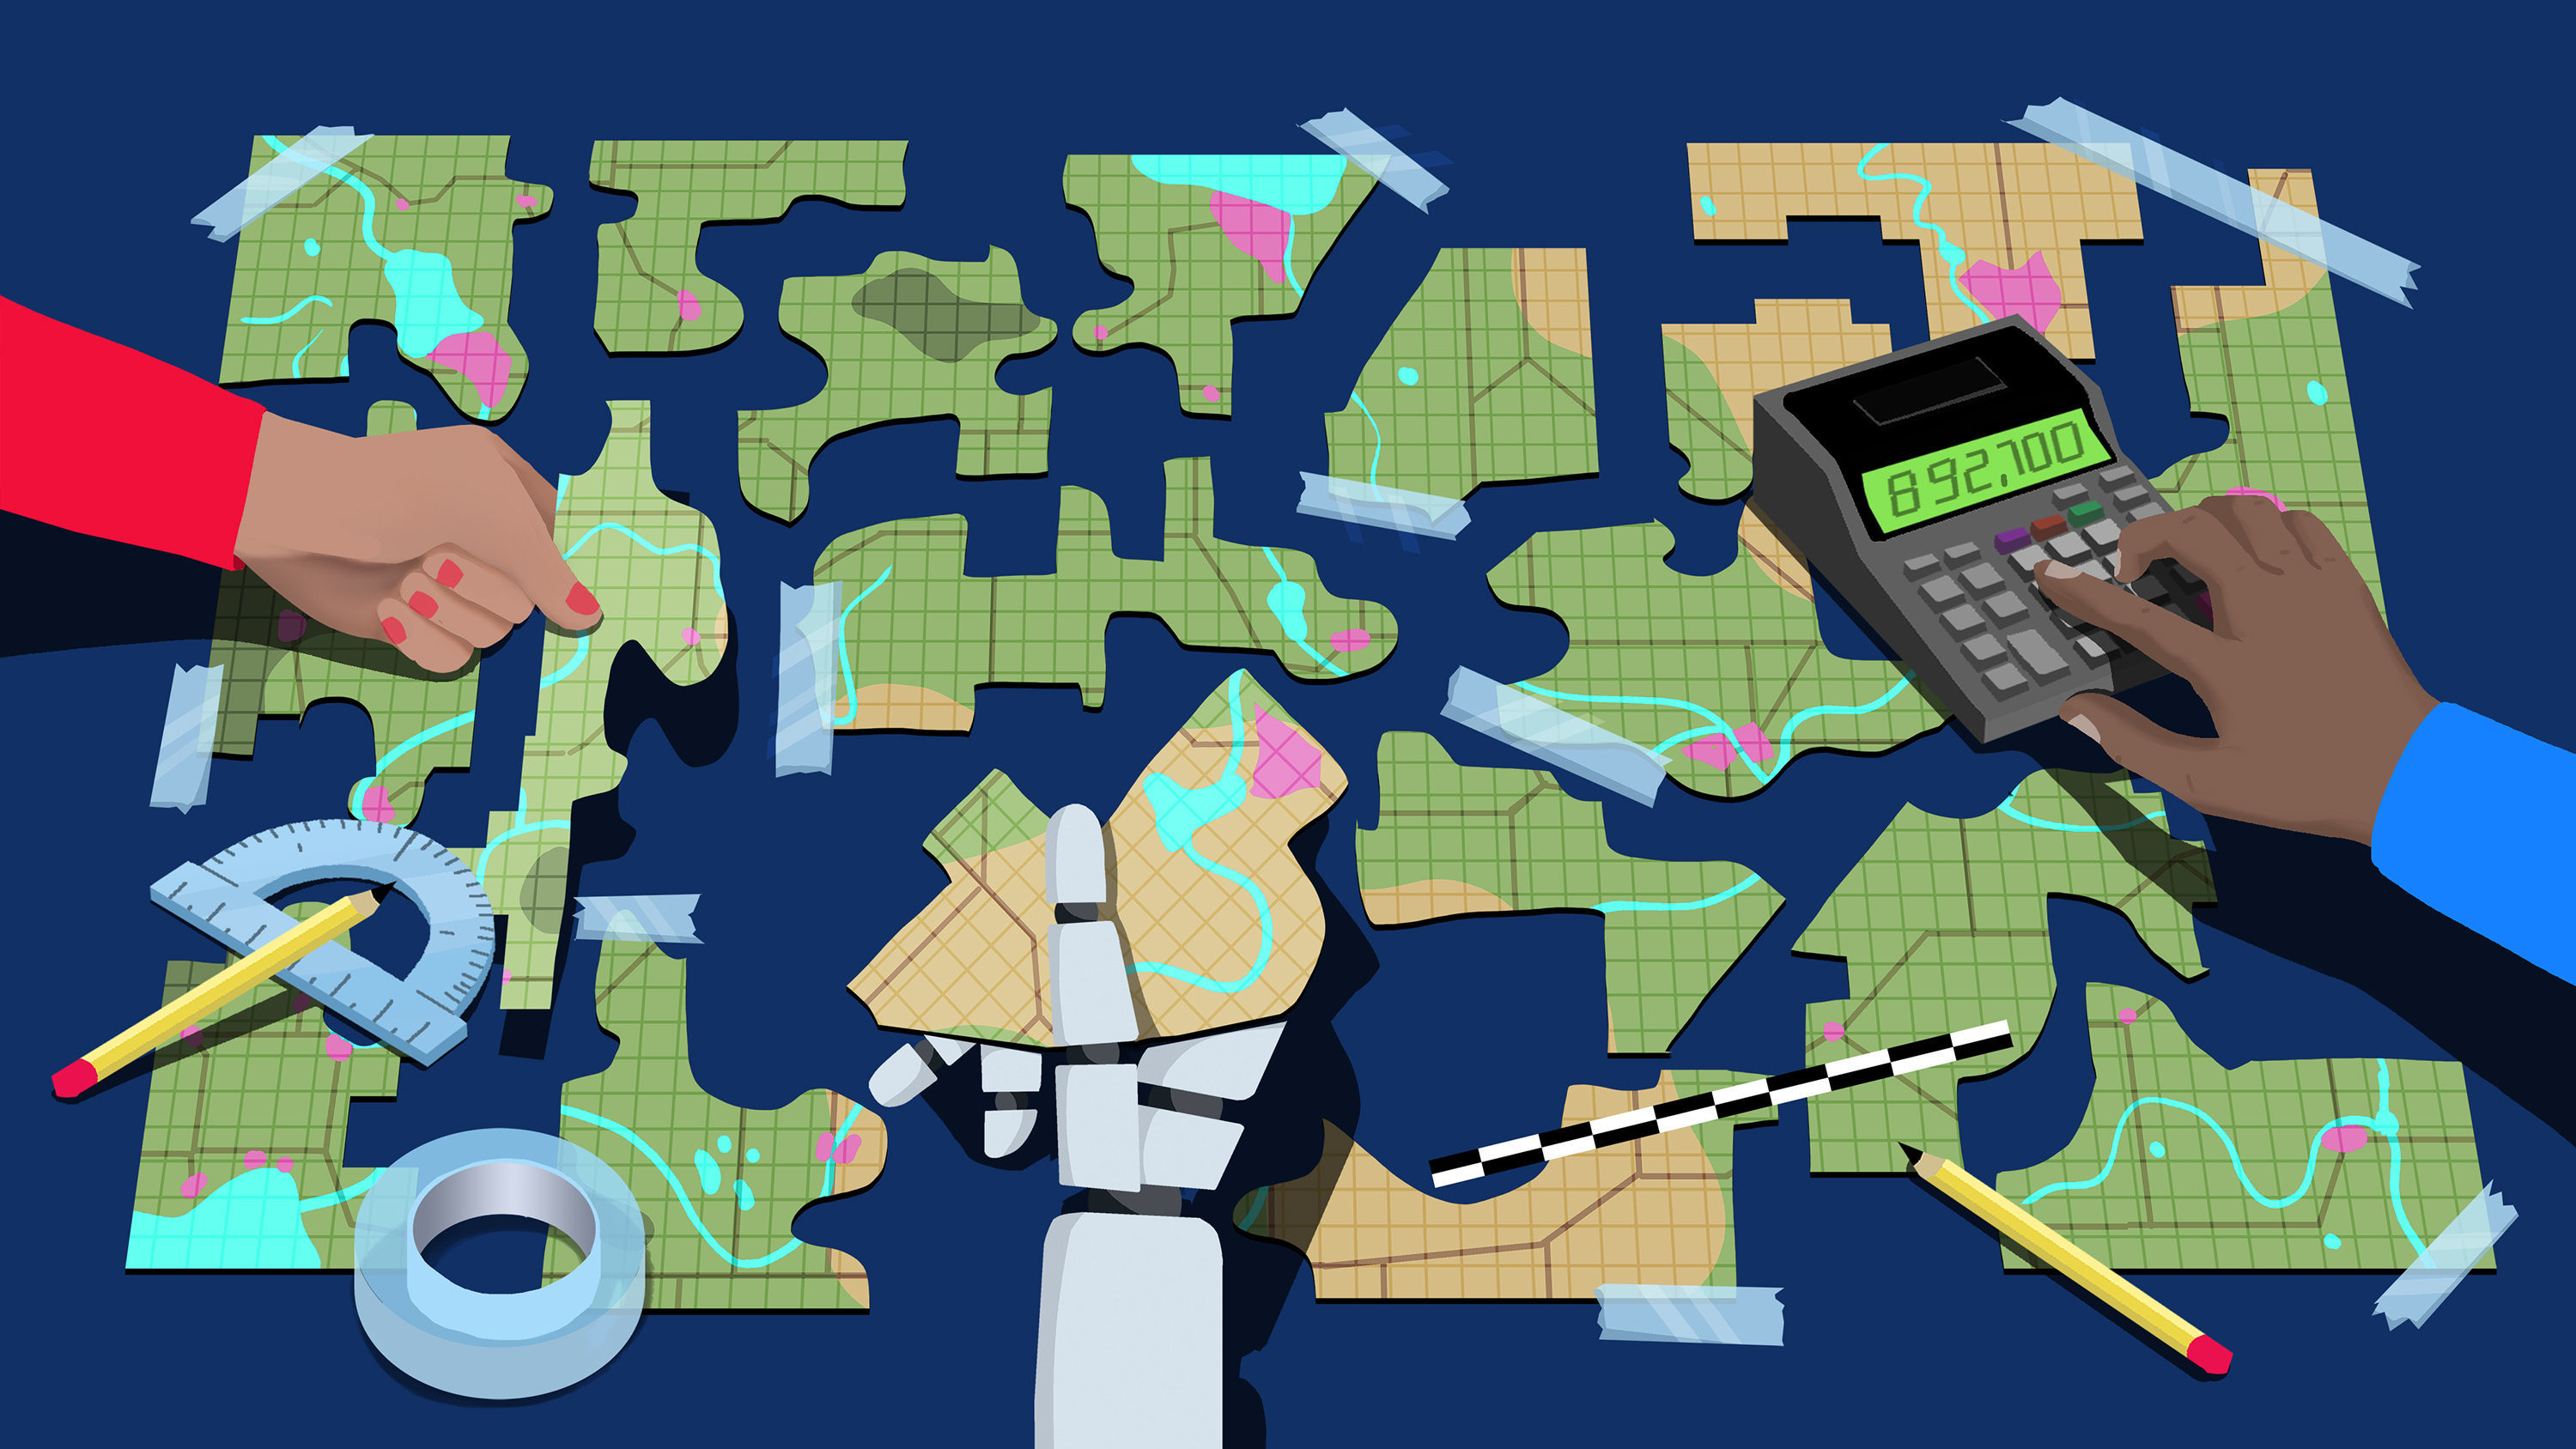 conceptual illustration of a map being cut up and taped together